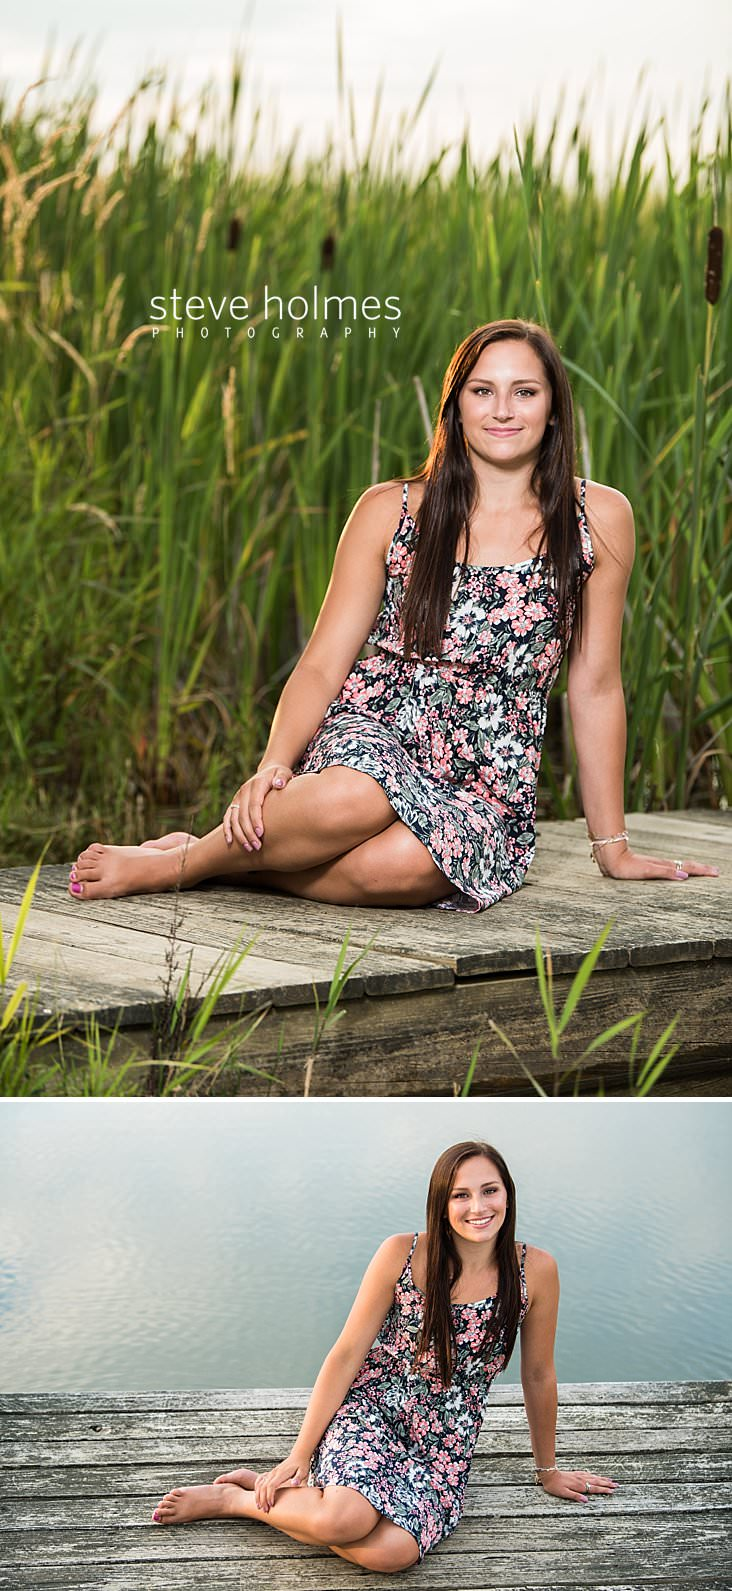 15_Barefoot teen in floral dress sits on a dock for senior portrait.jpg